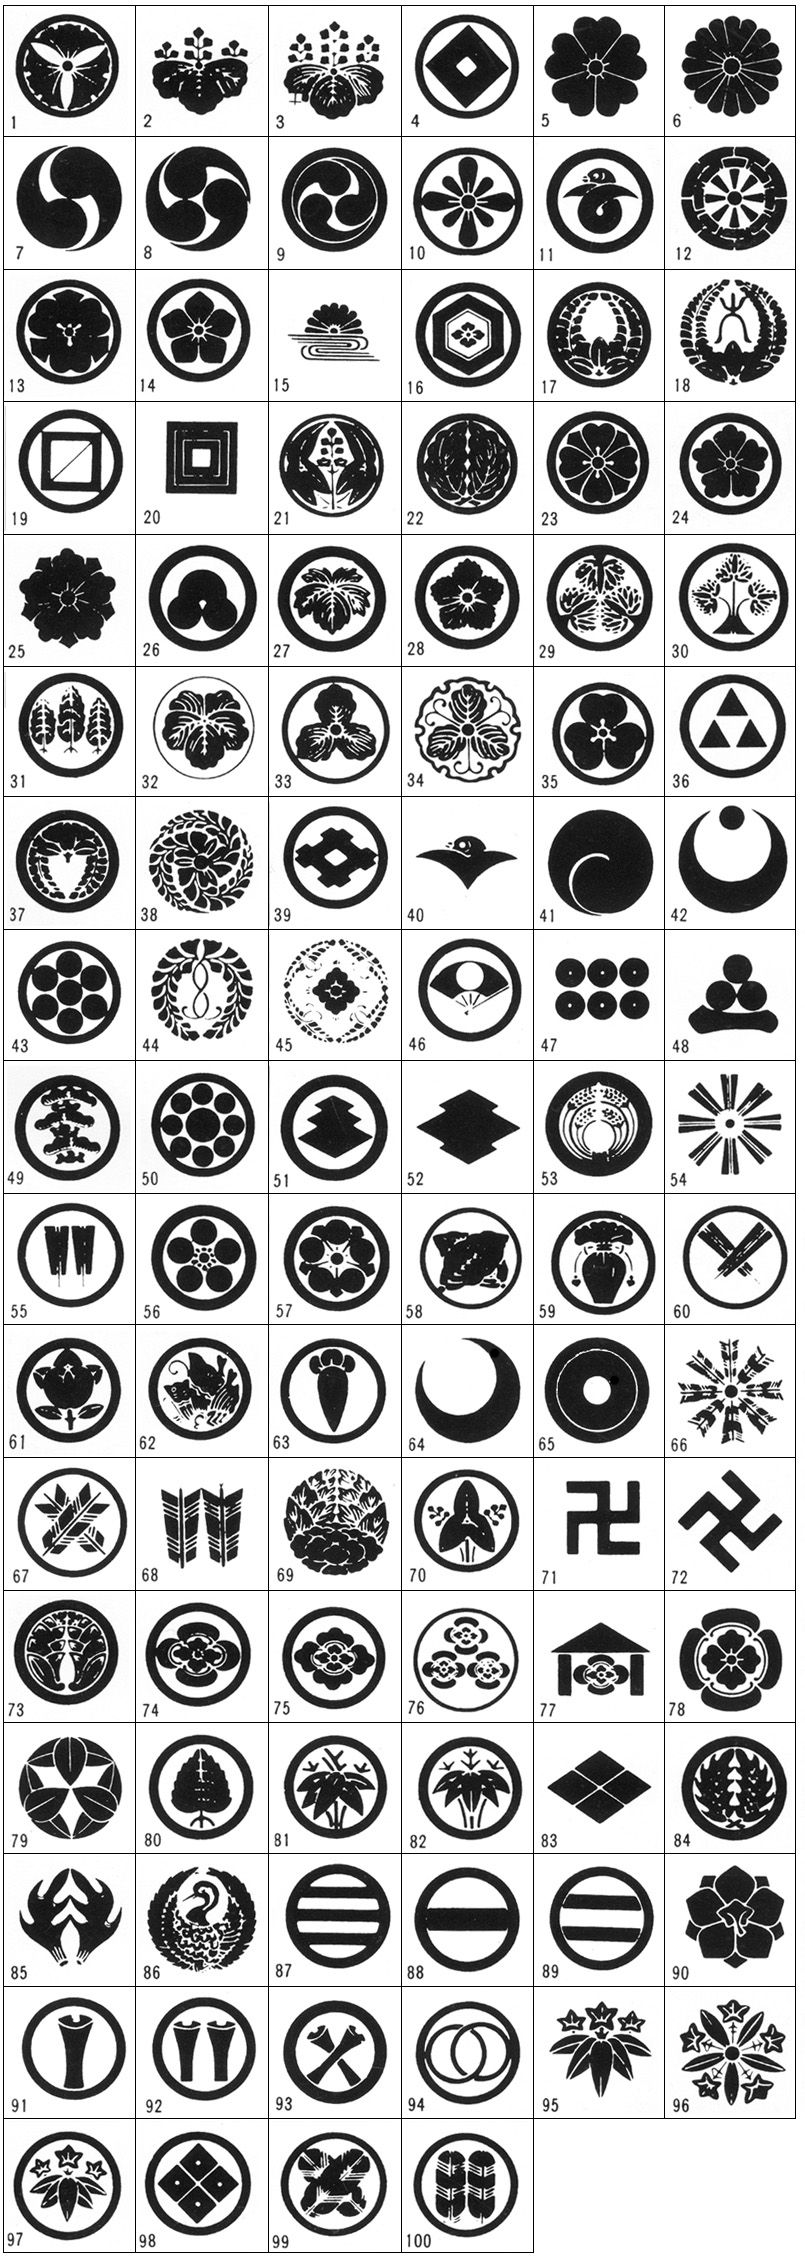 Kamon 家紋 - Japanese emblems used to decorate and identify an individual or family. Similar to the coats of arms in Europe.